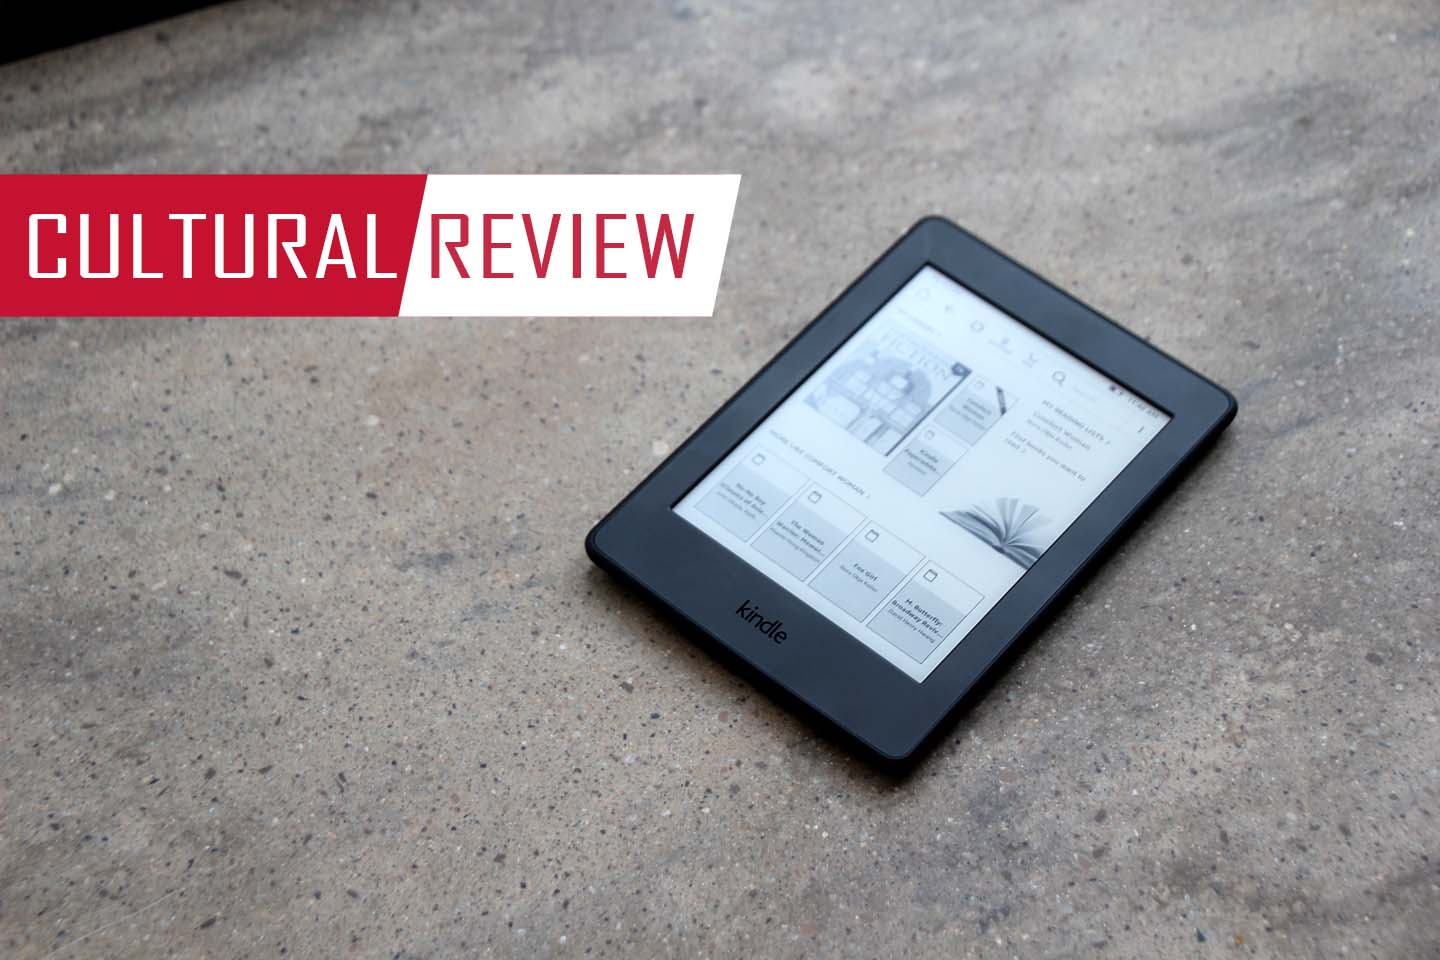 kindle_review_1_large